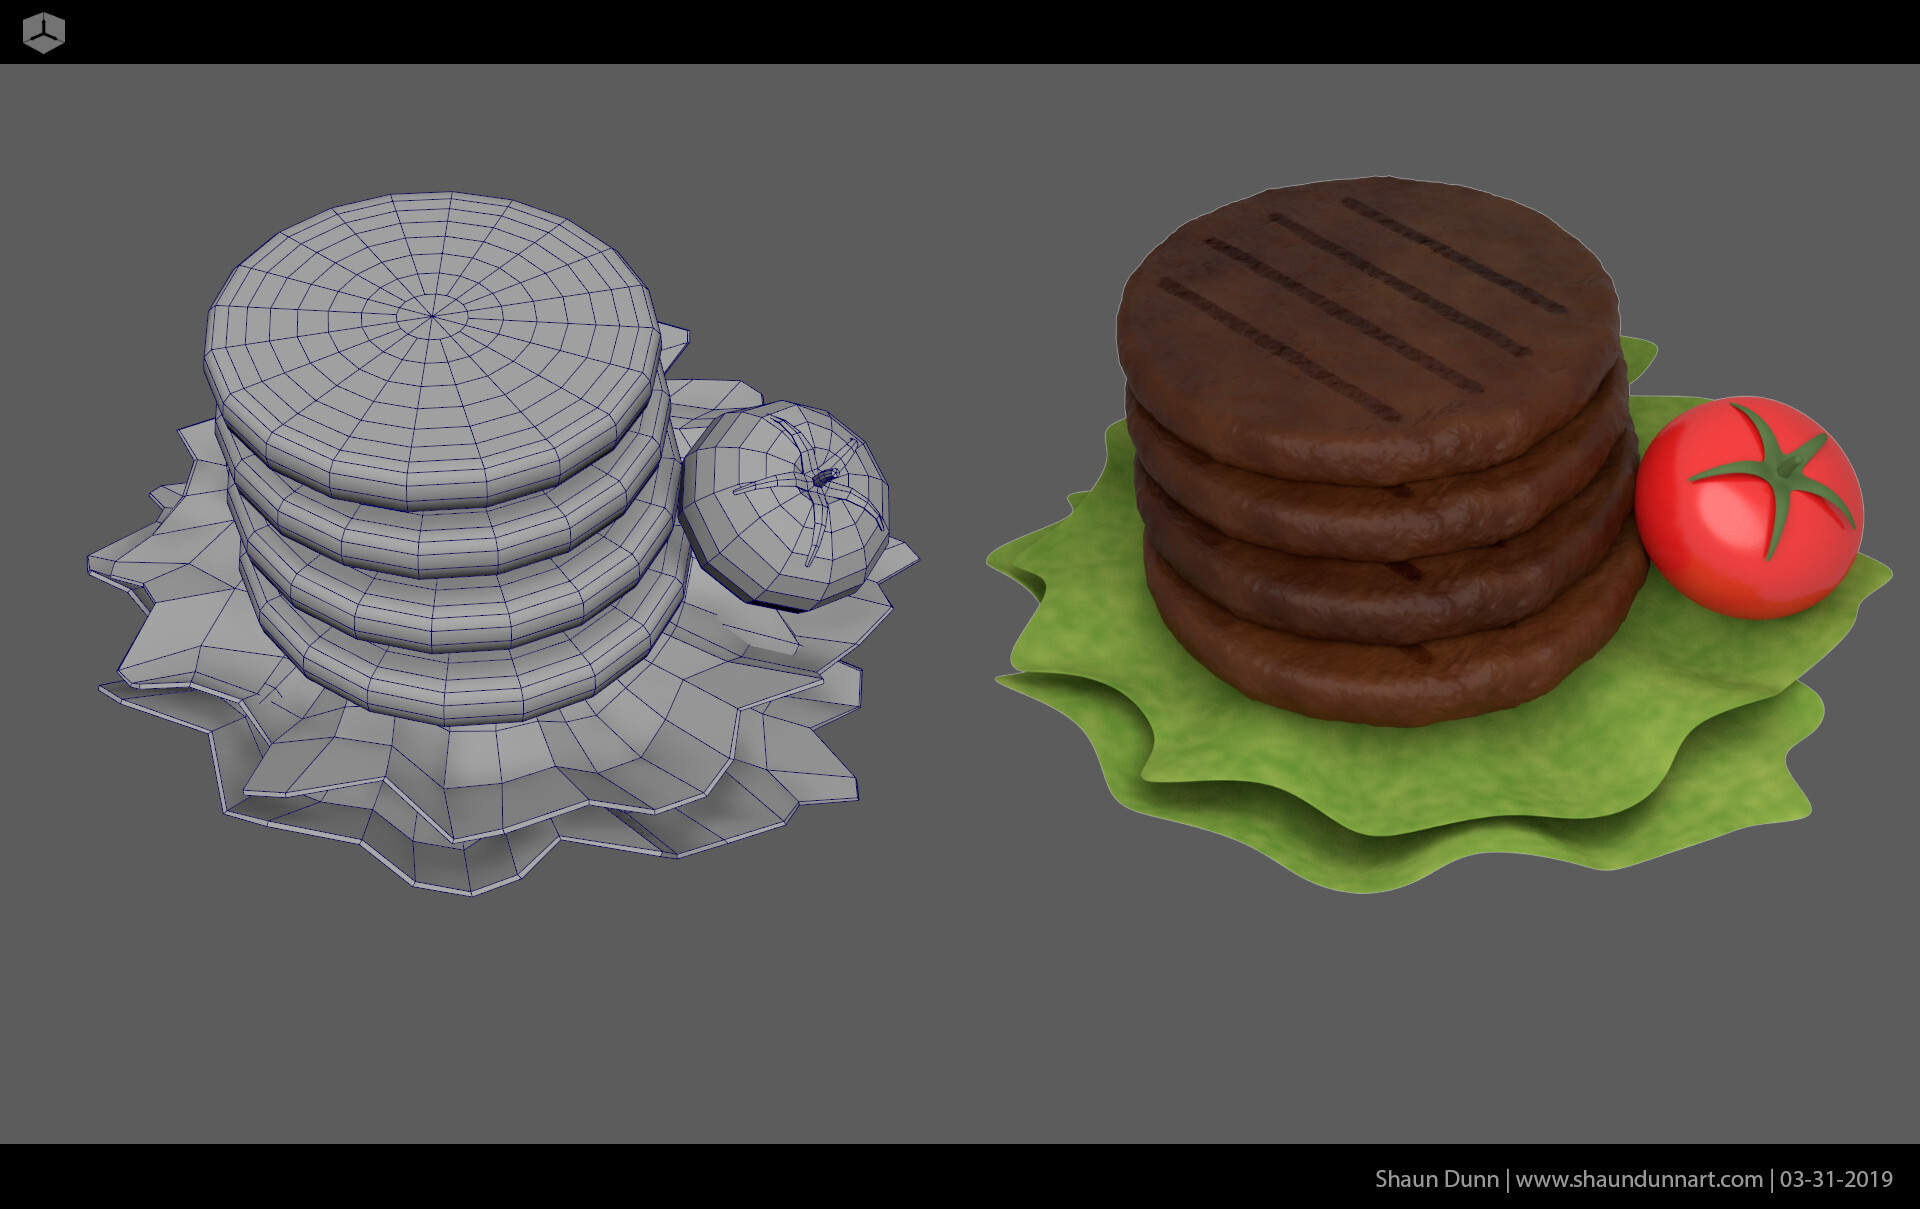 I created stylized canned 3D burger patties so I could project the rendered image on one of my canned goods.